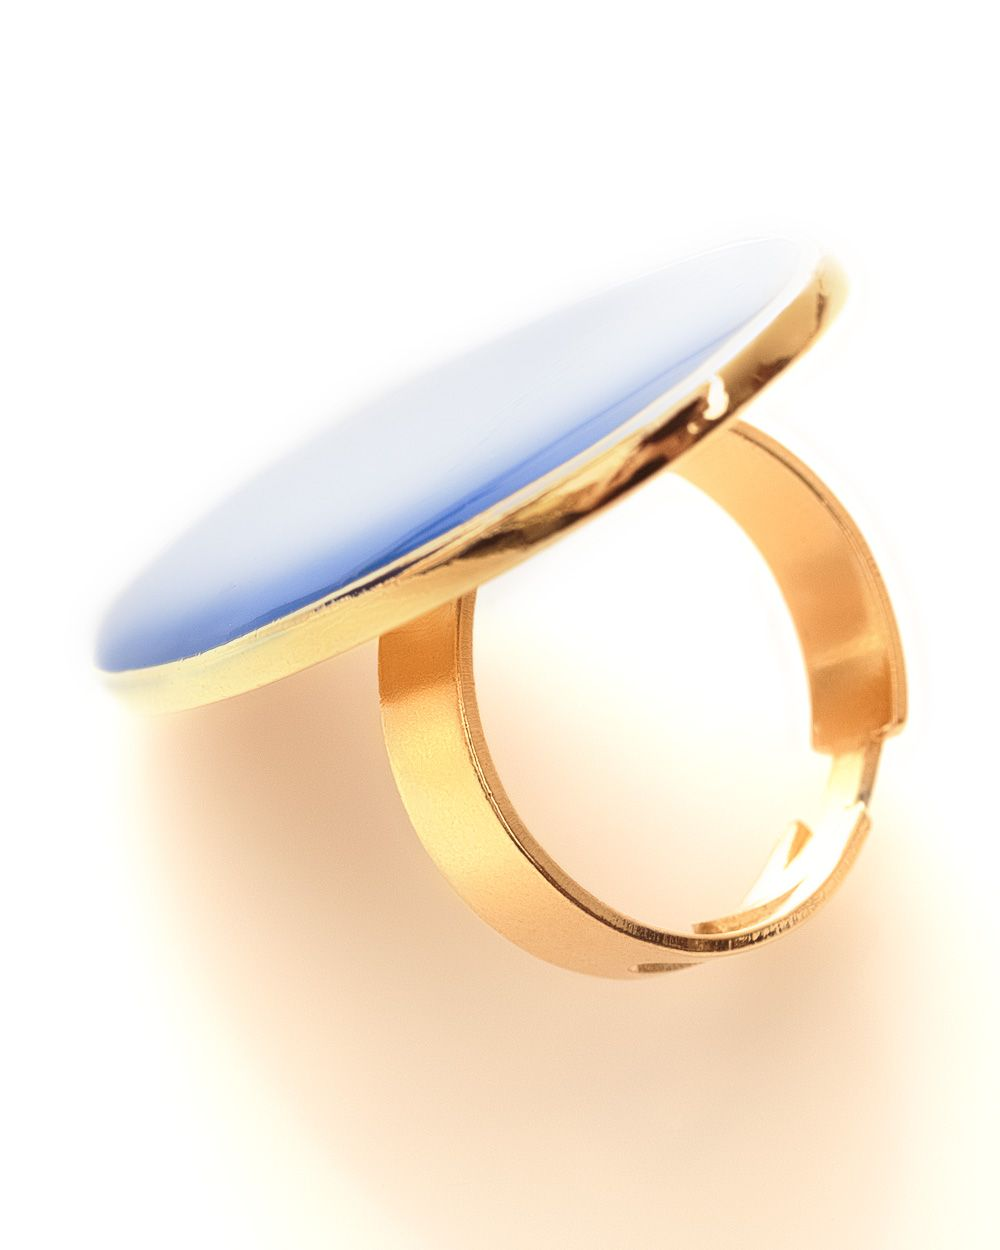 Rita oval enamel ring